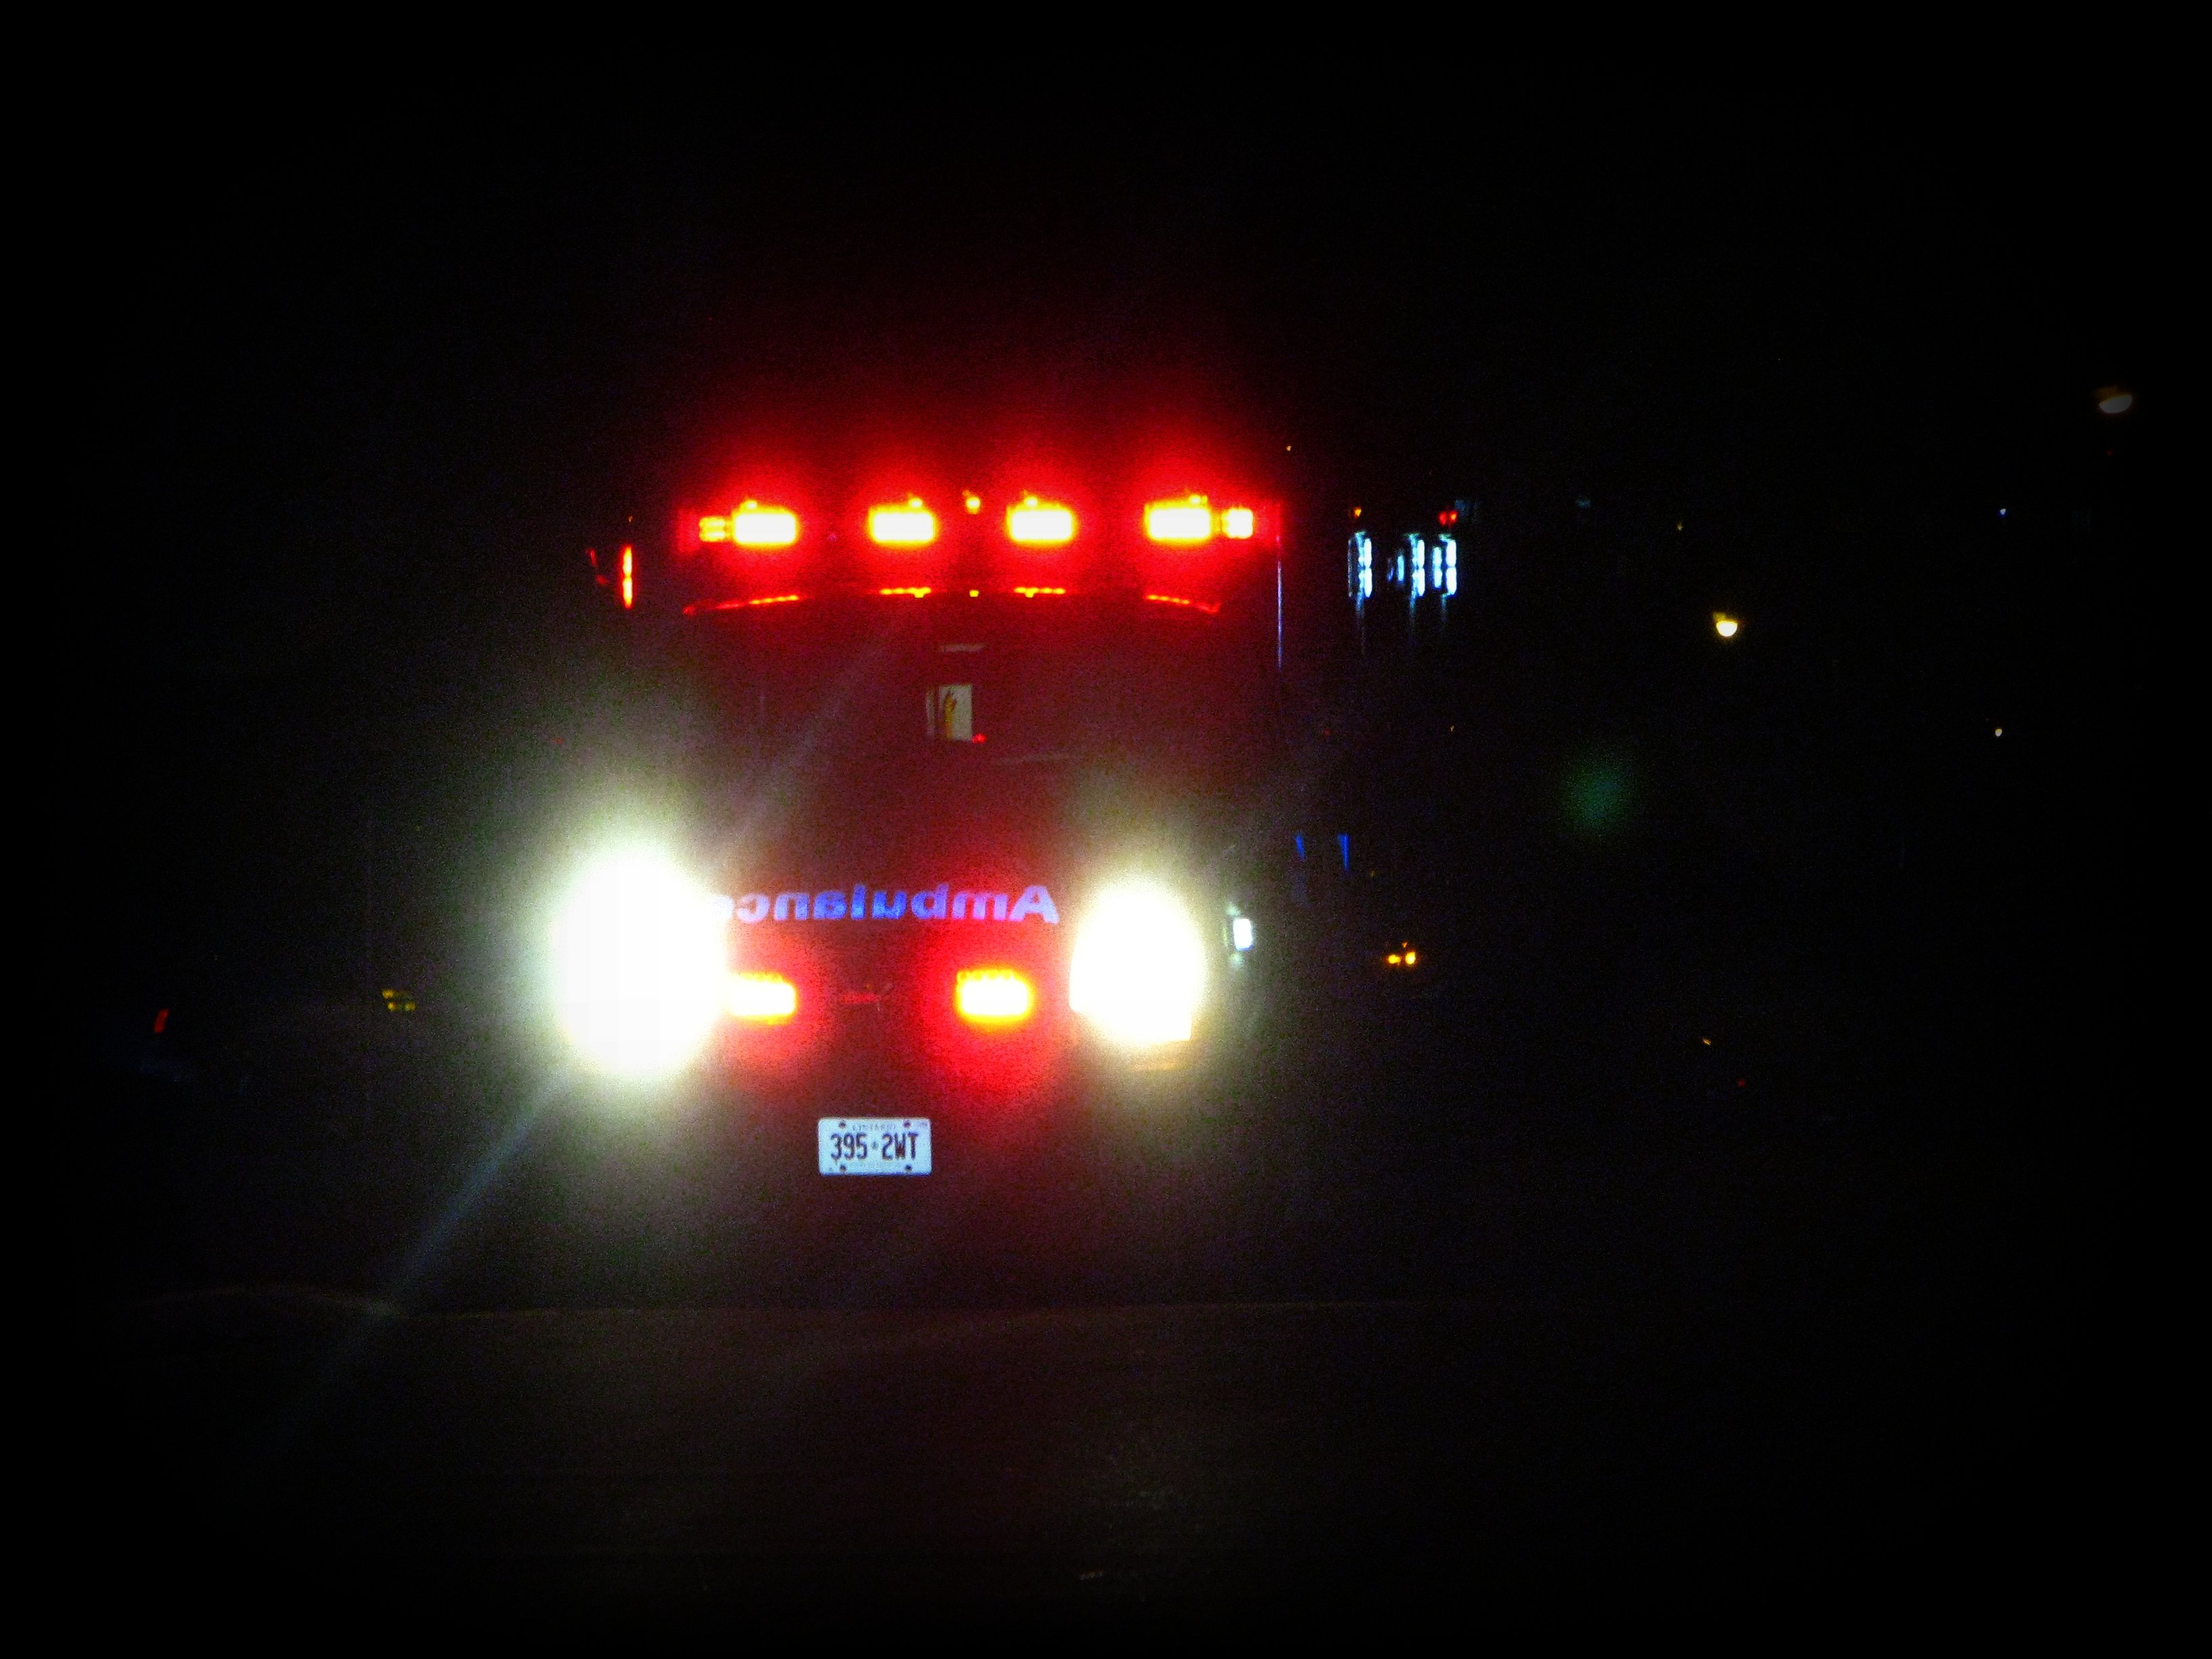 Ambulance_dark_1.jpg